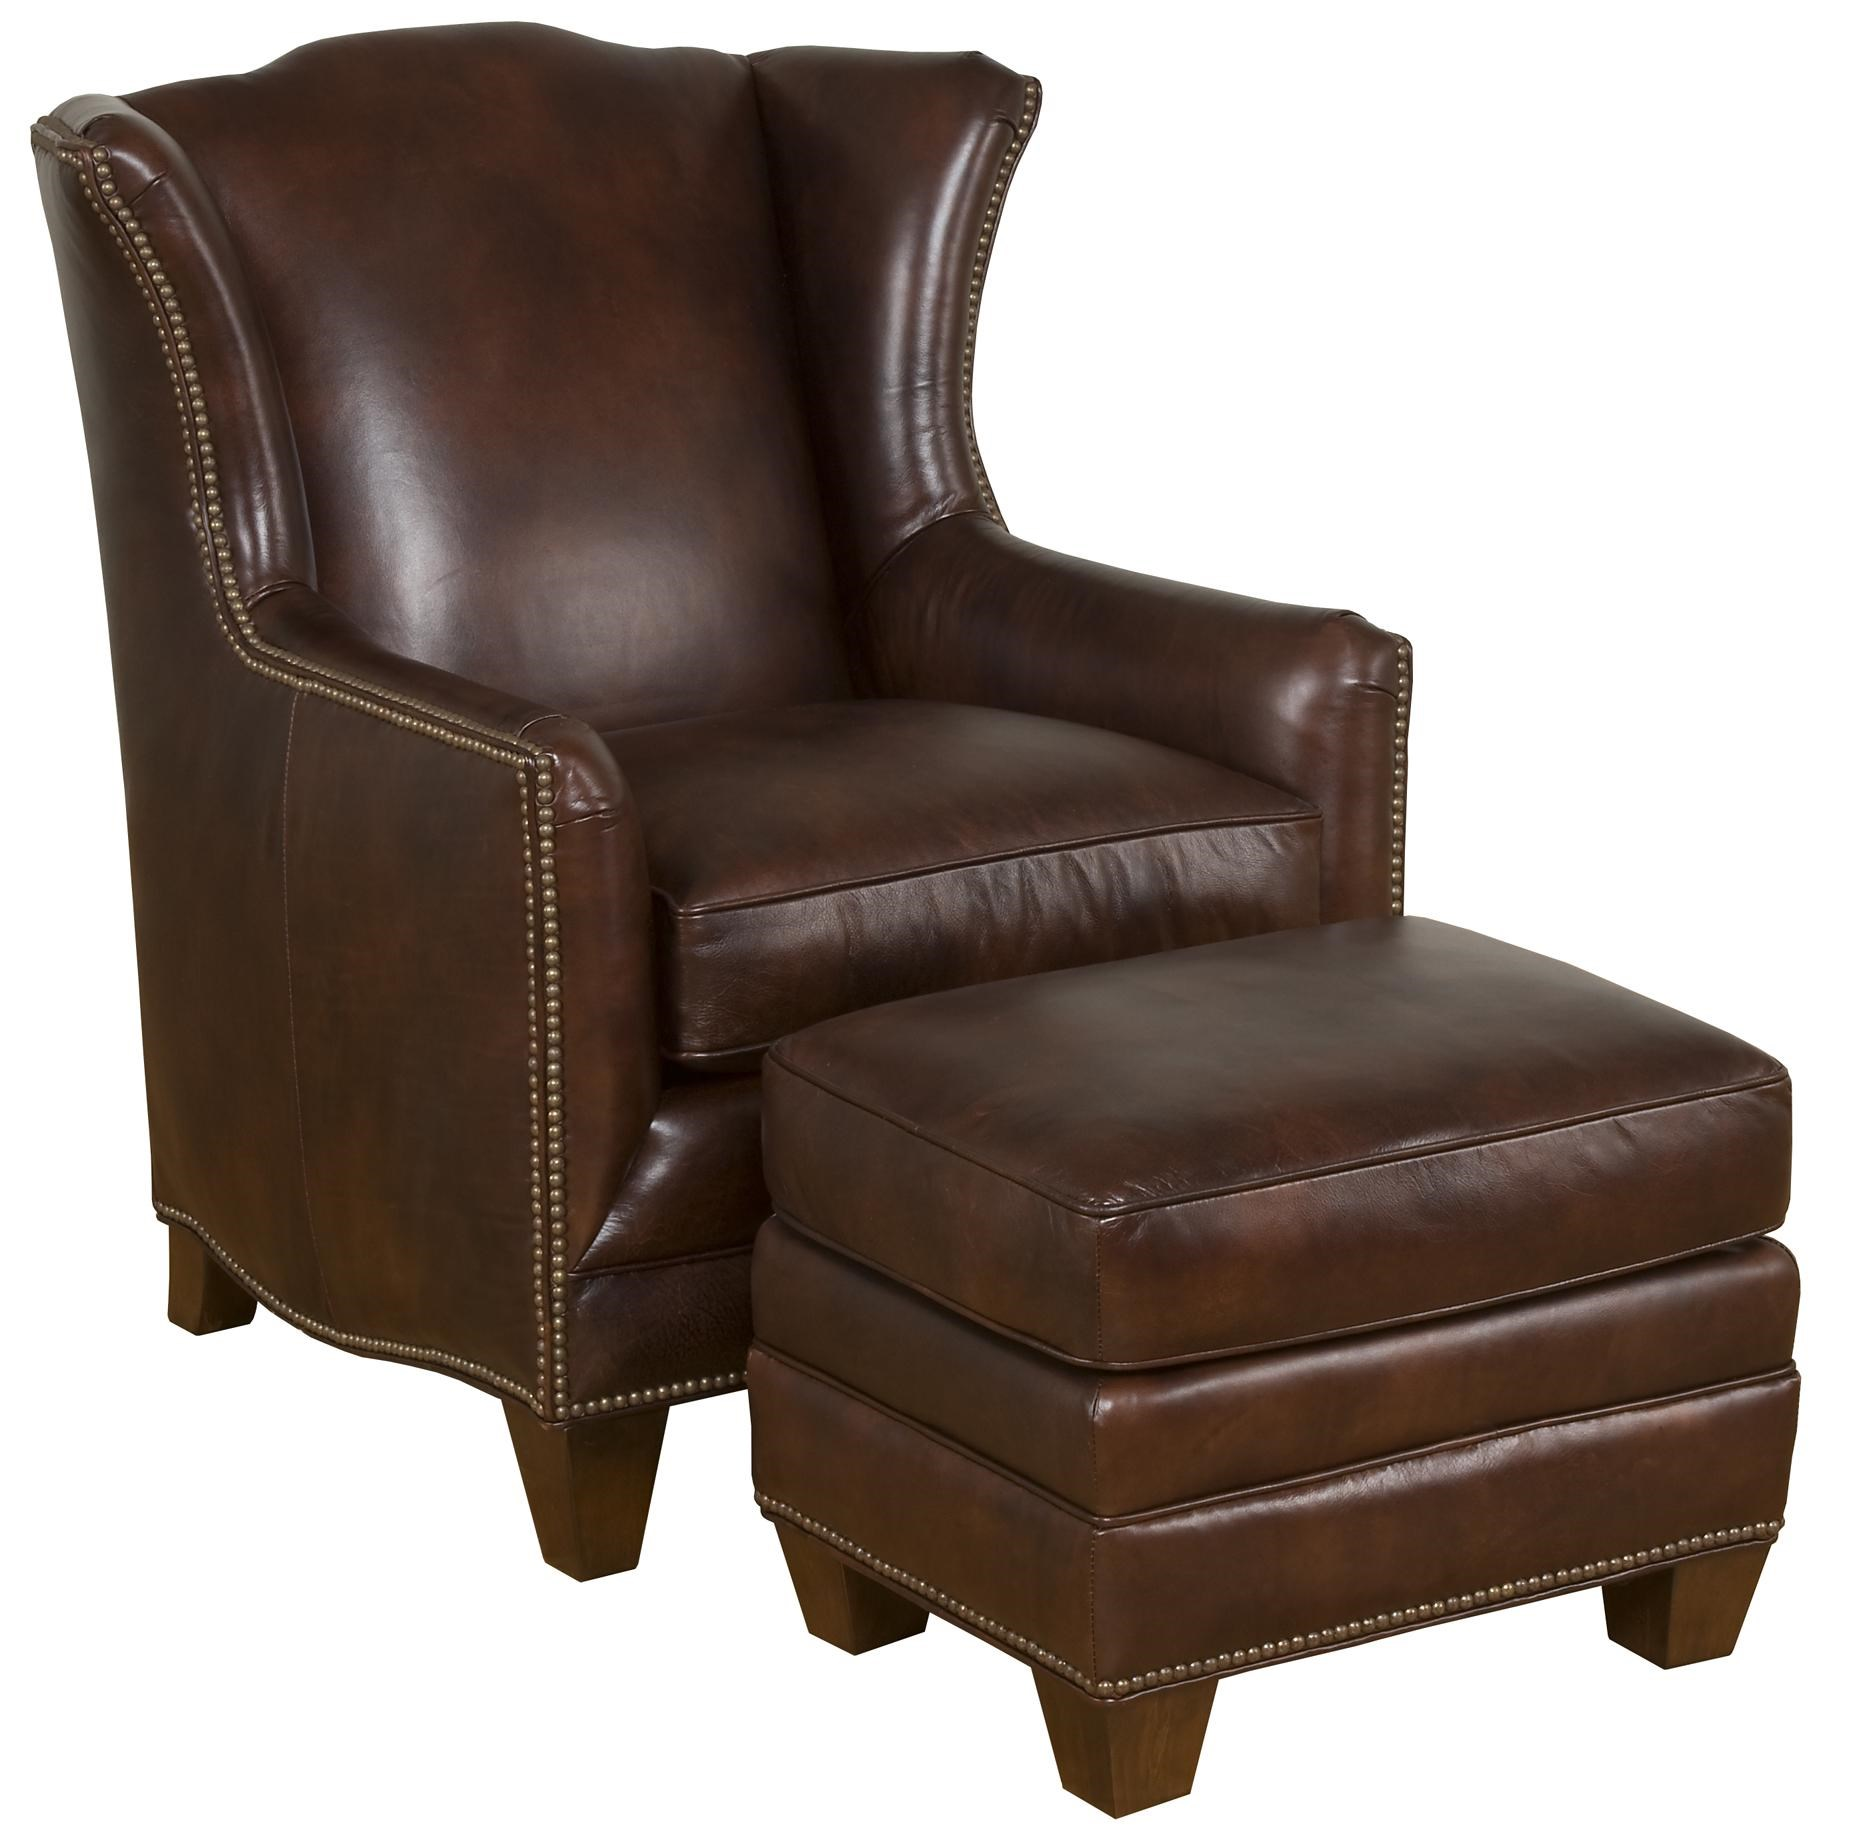 King Hickory Accent Chairs And OttomansAthens Accent Chair U0026 Ottoman